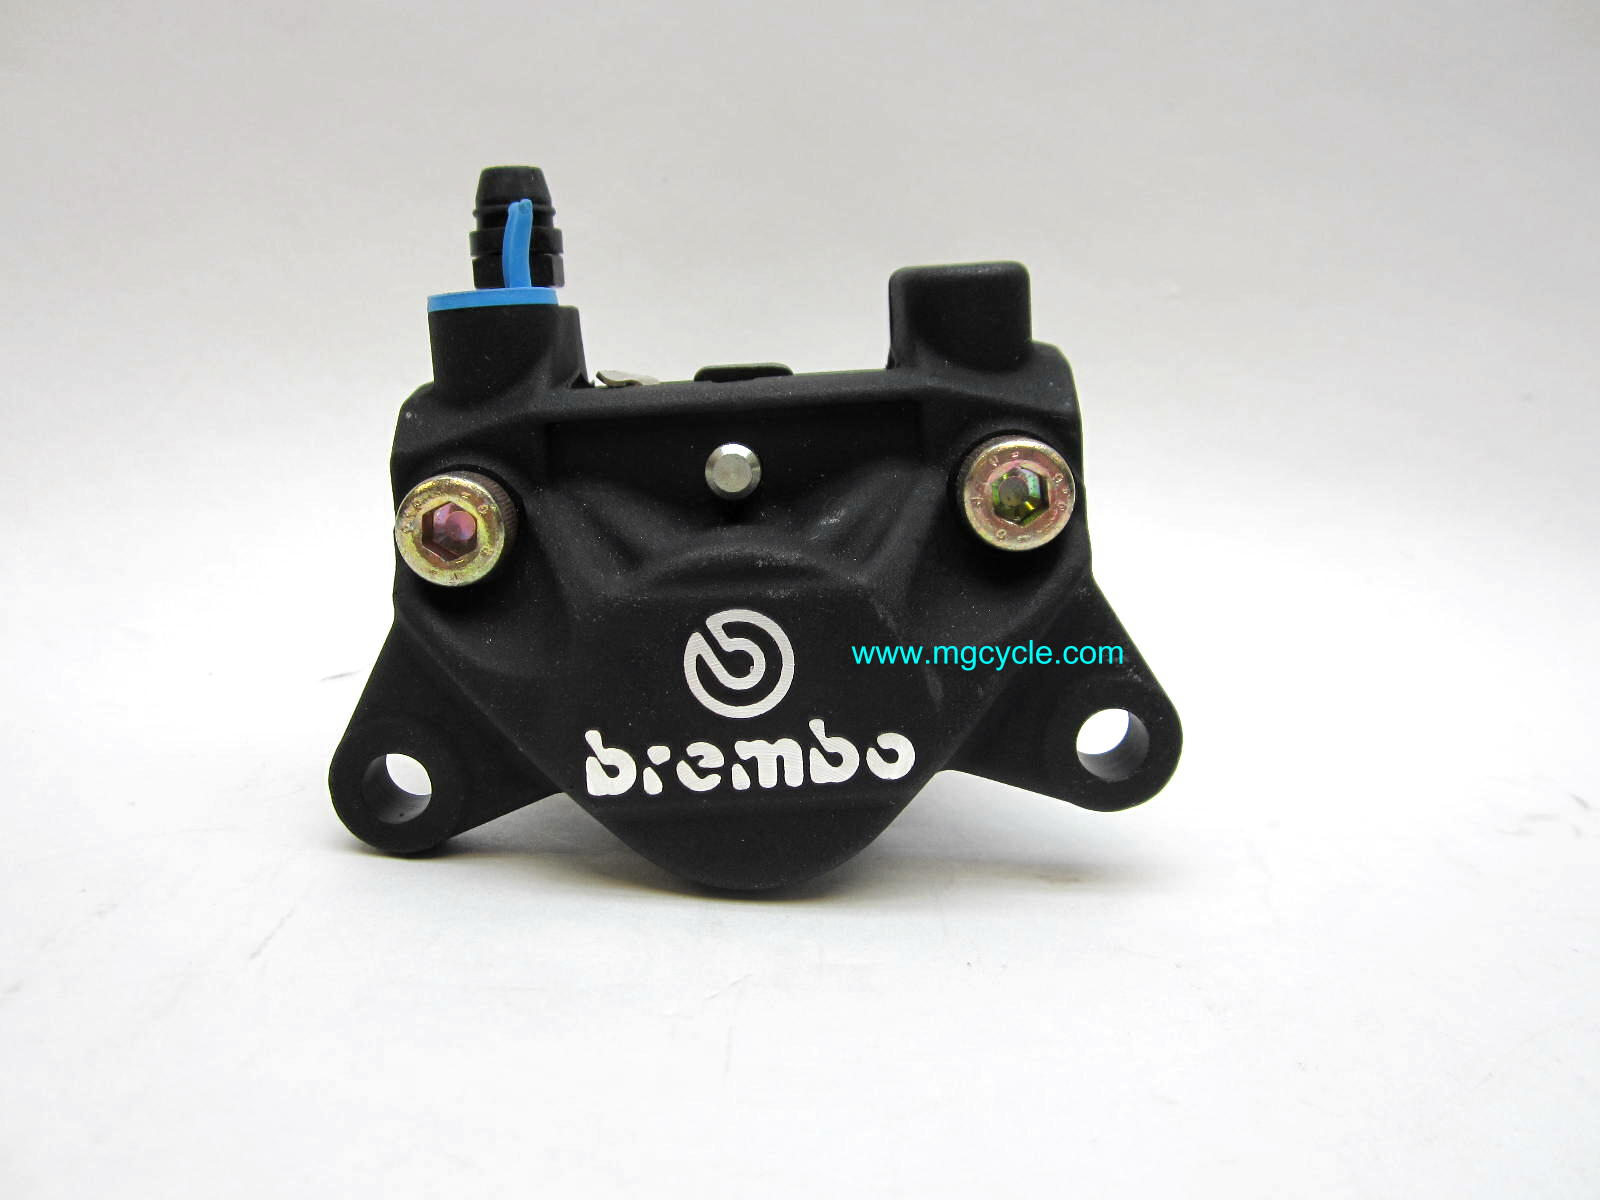 Brembo rear caliper for small twins series V35 V50 V65, V75